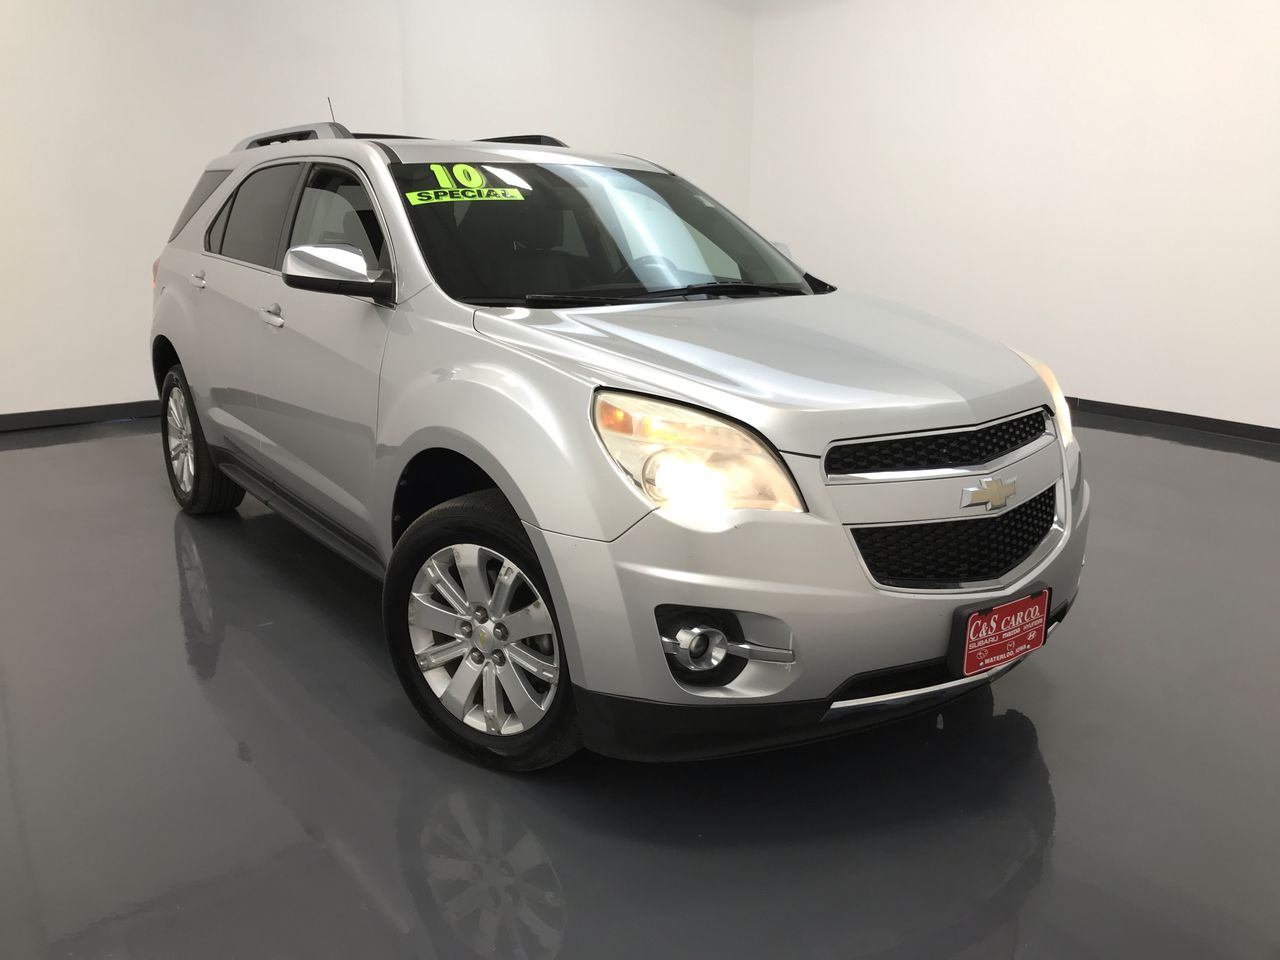 2010 Chevrolet Equinox  - C & S Car Company